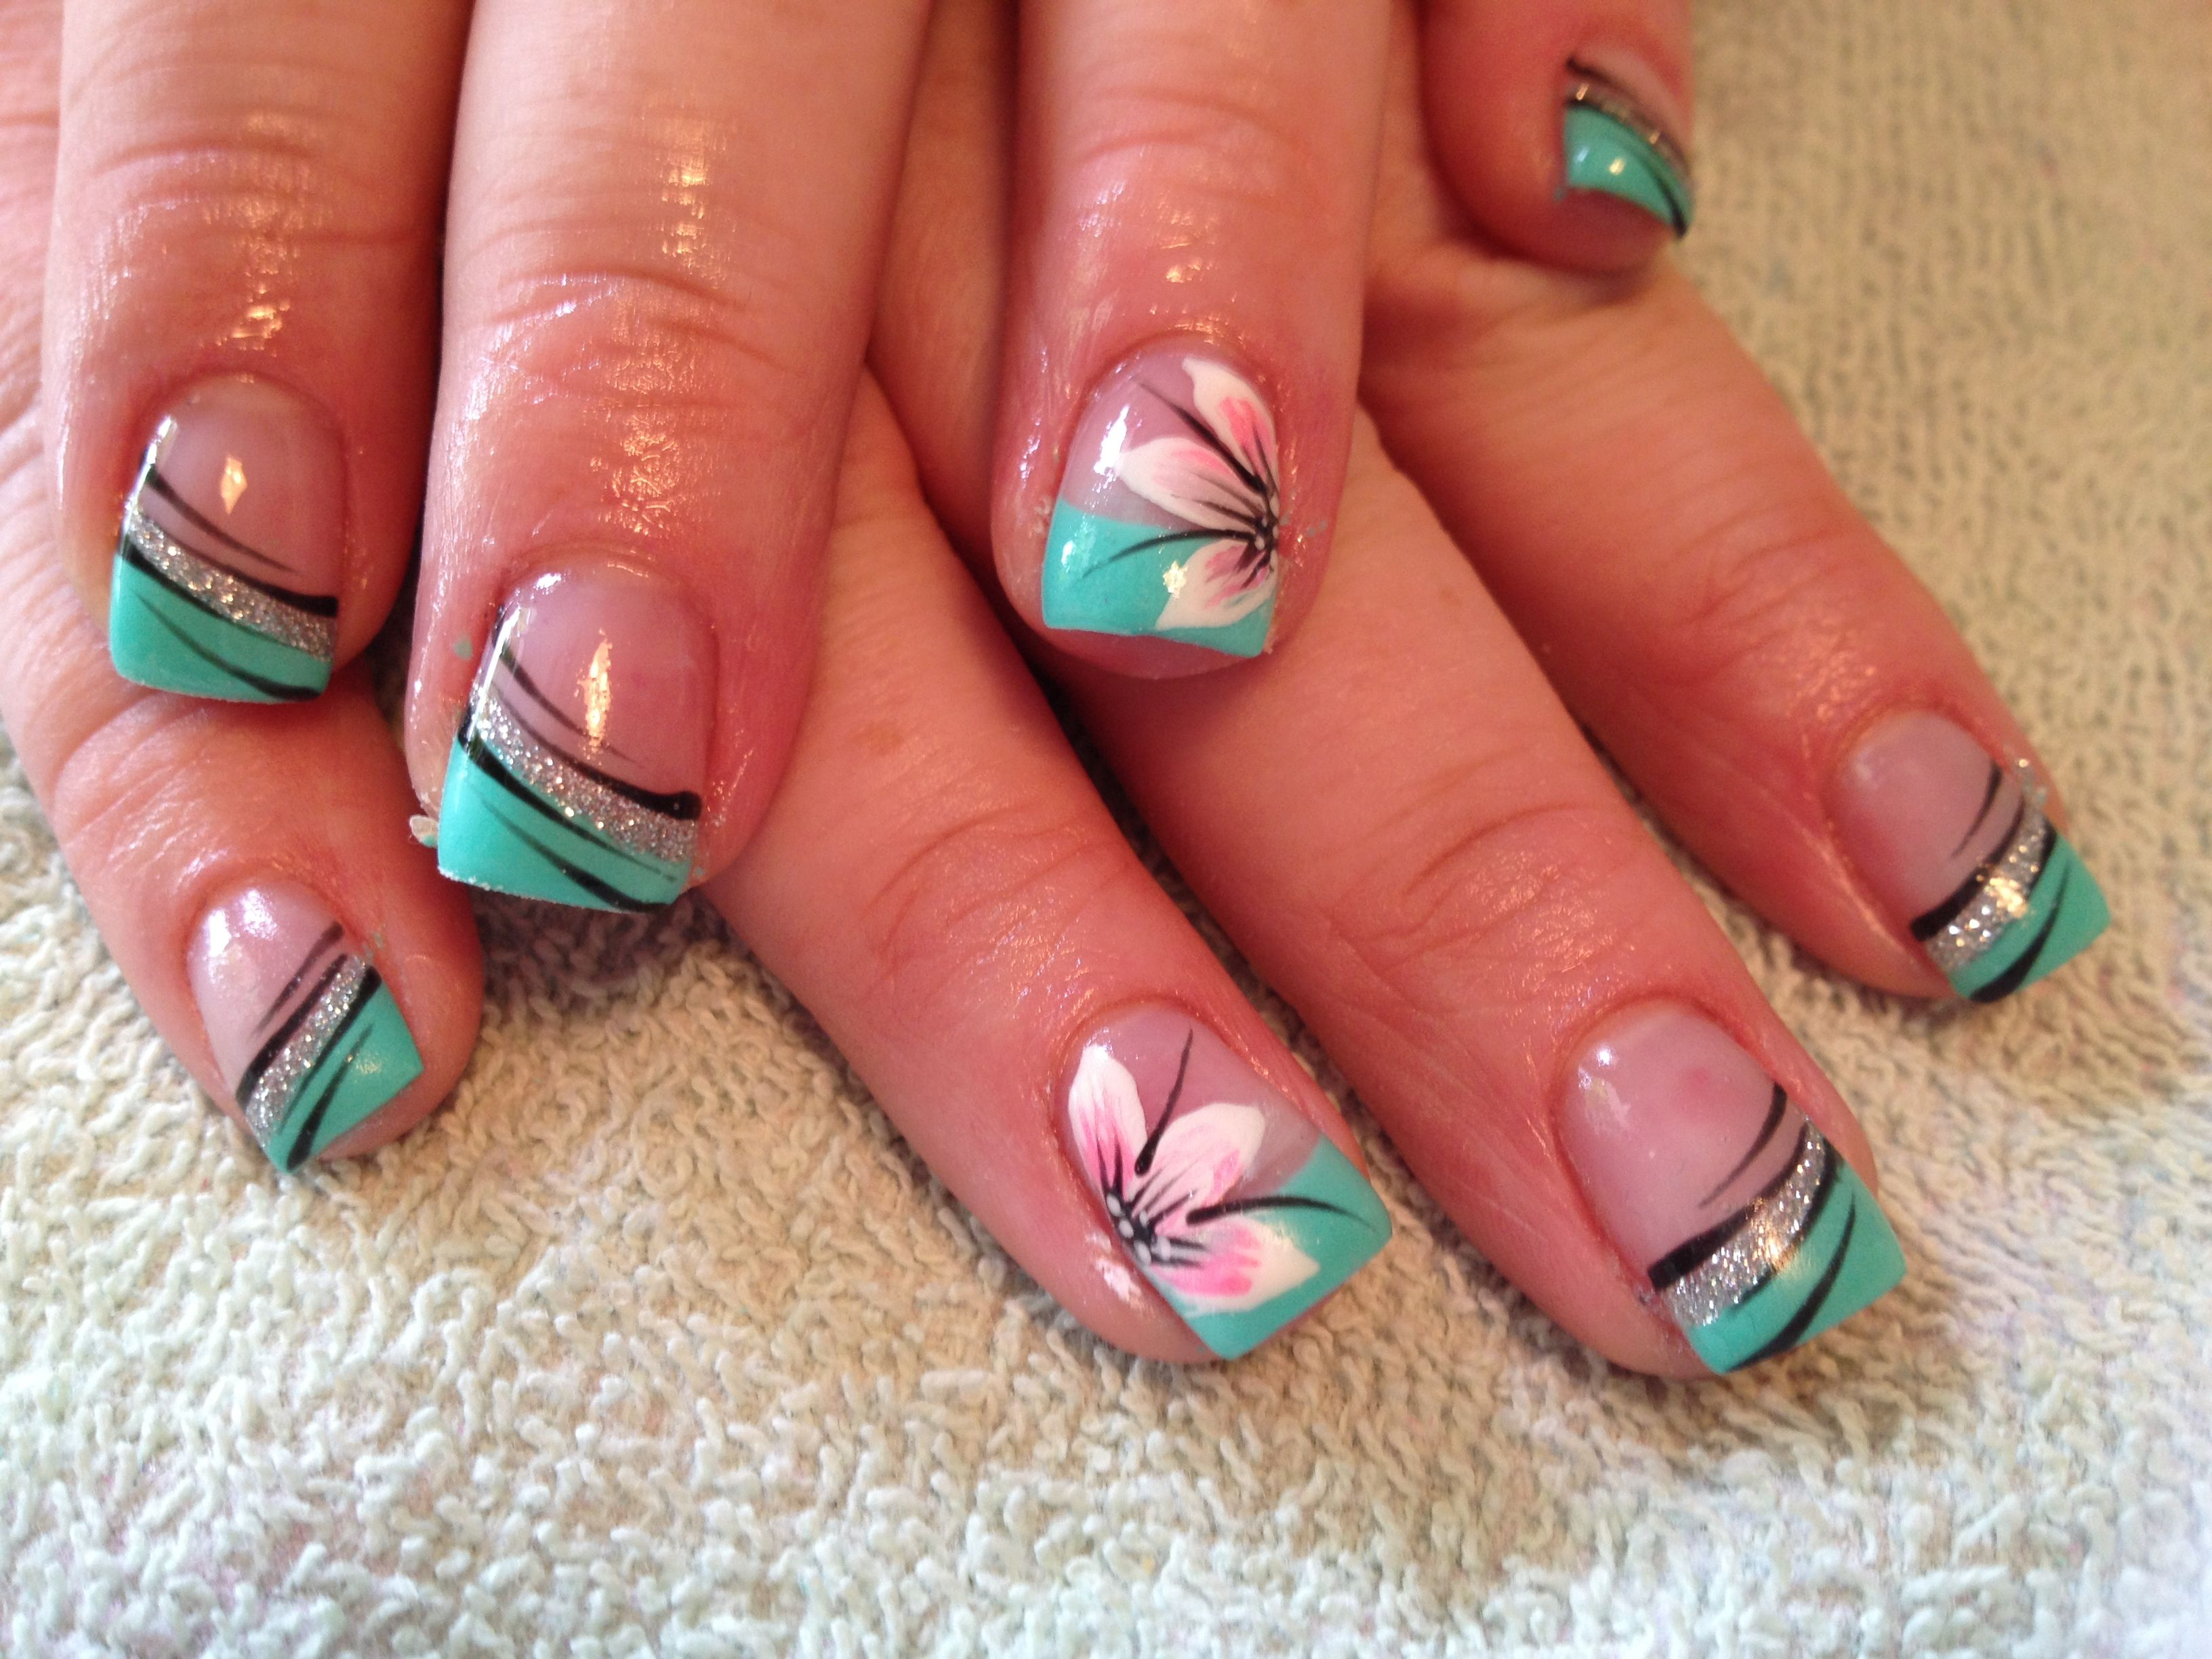 Turquoise nails with flowers | Nails | Pinterest | Turquoise ...